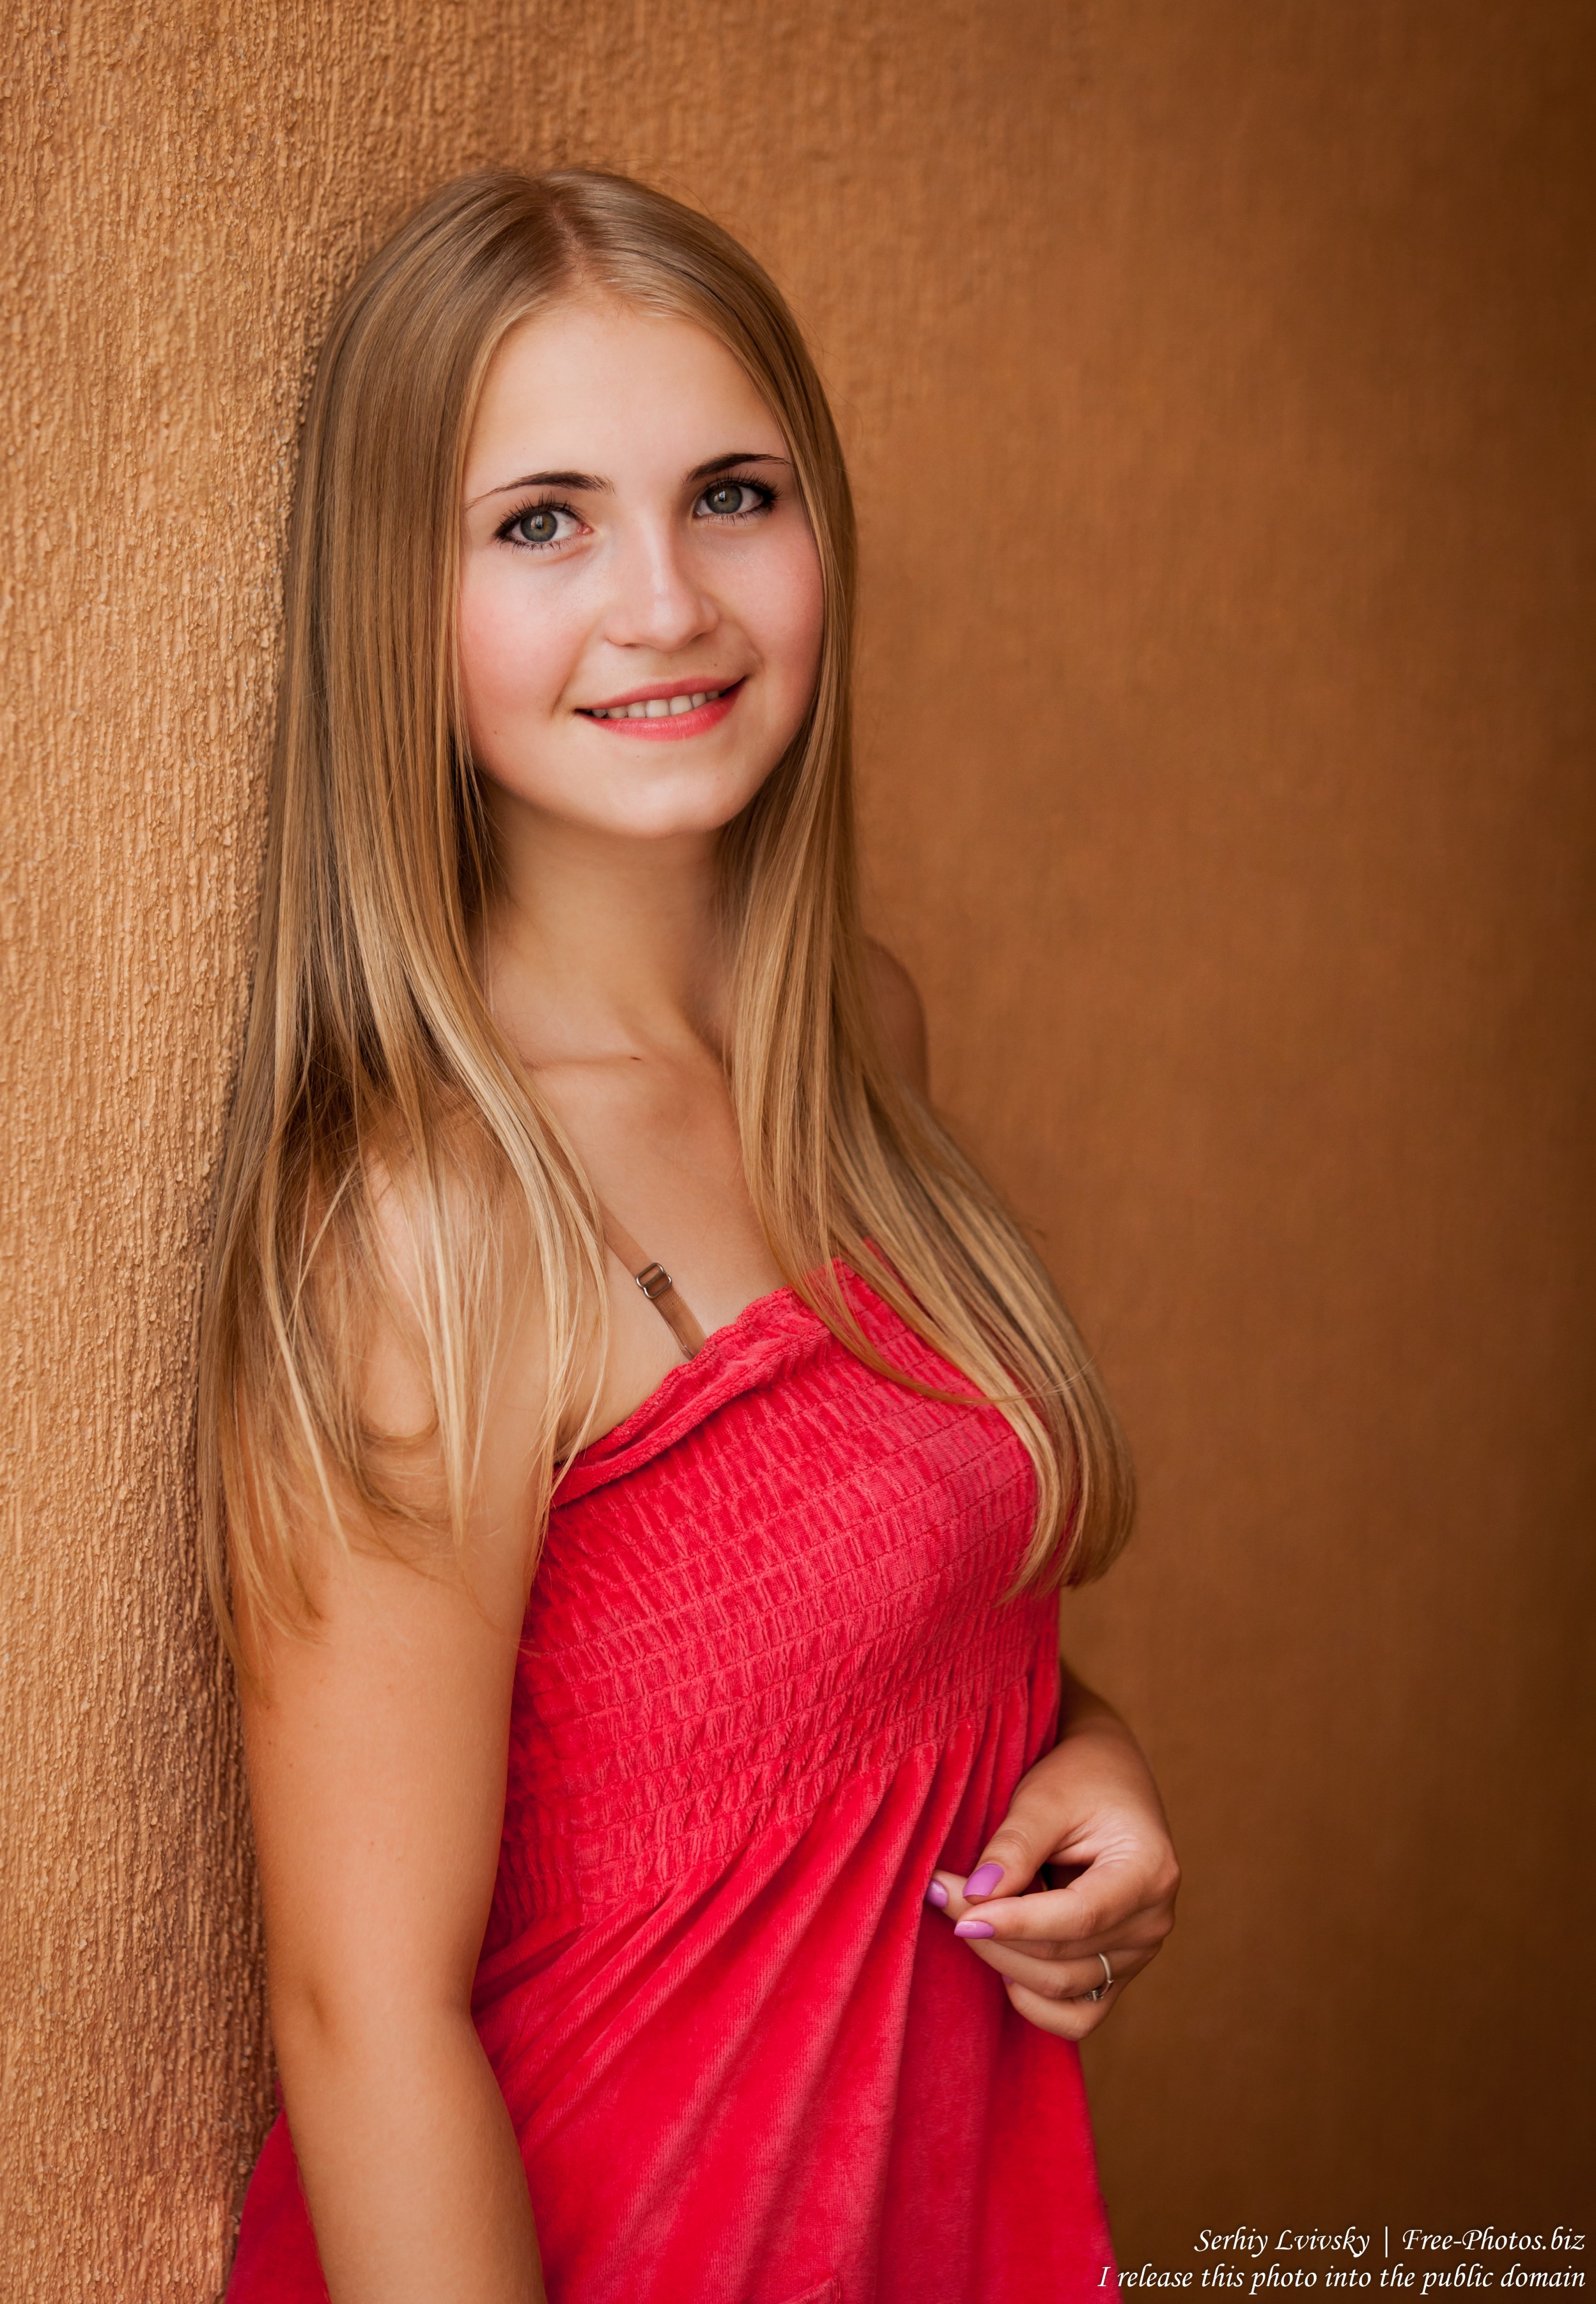 a Catholic 19-year-old natural blond girl photographed in August 2015 by Serhiy Lvivsky, picture 31